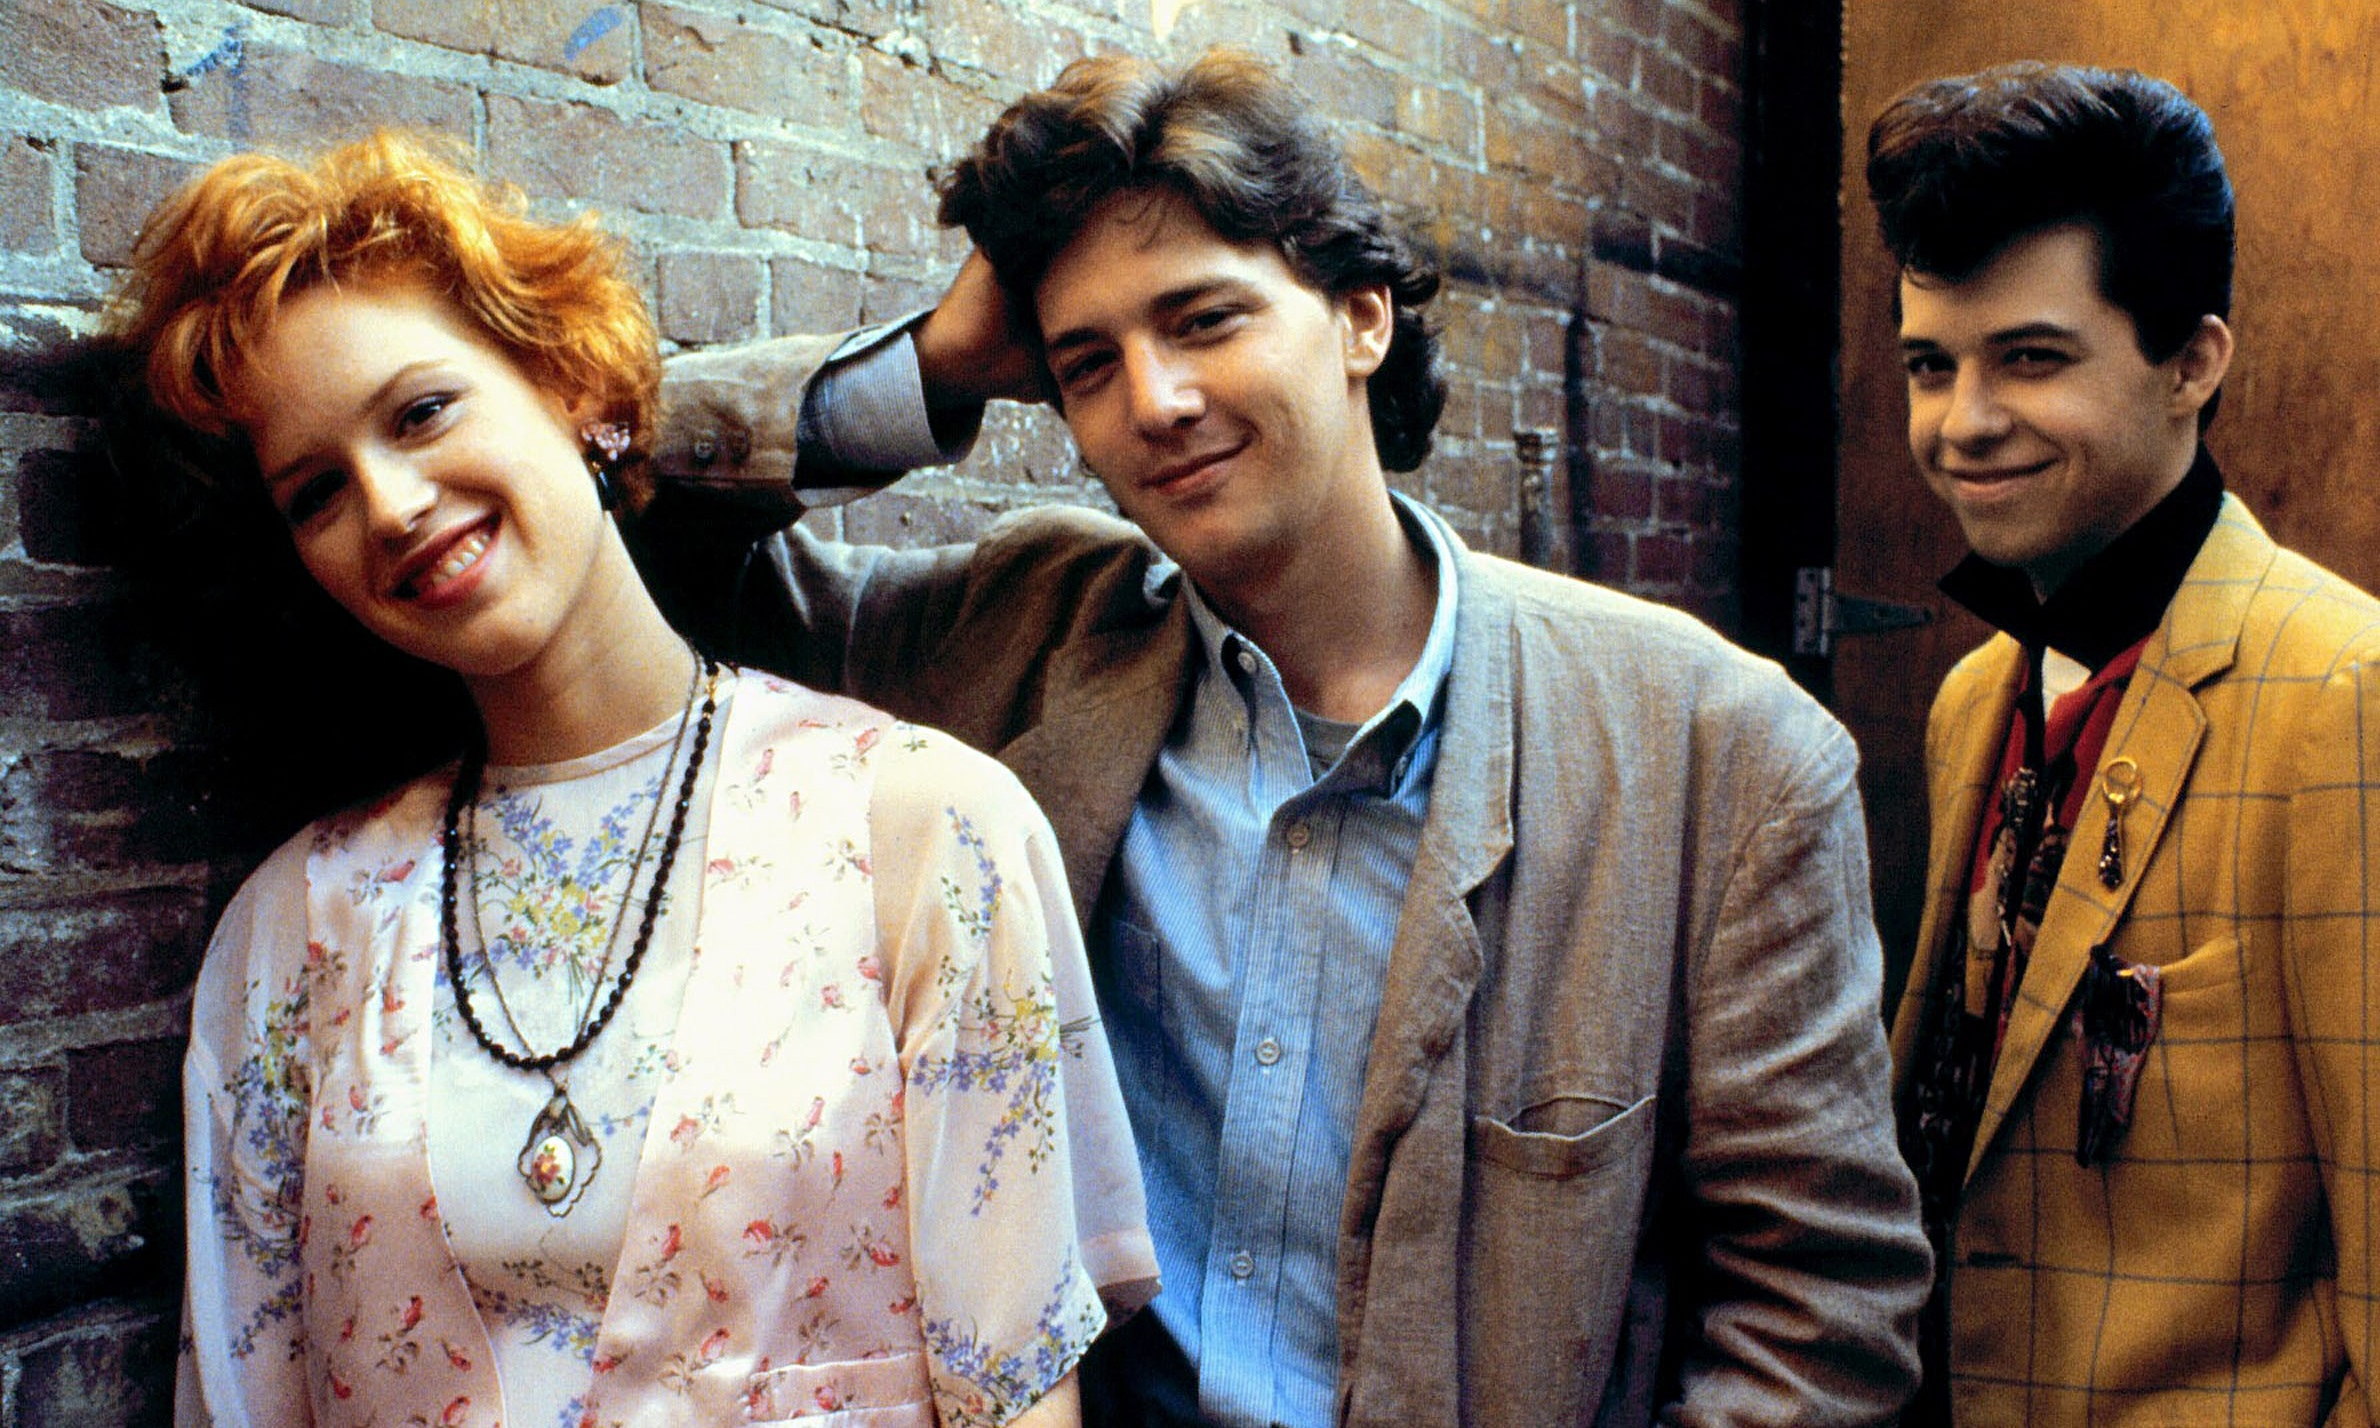 'Pretty in Pink' at 30: The Best and Worst Films of John ...